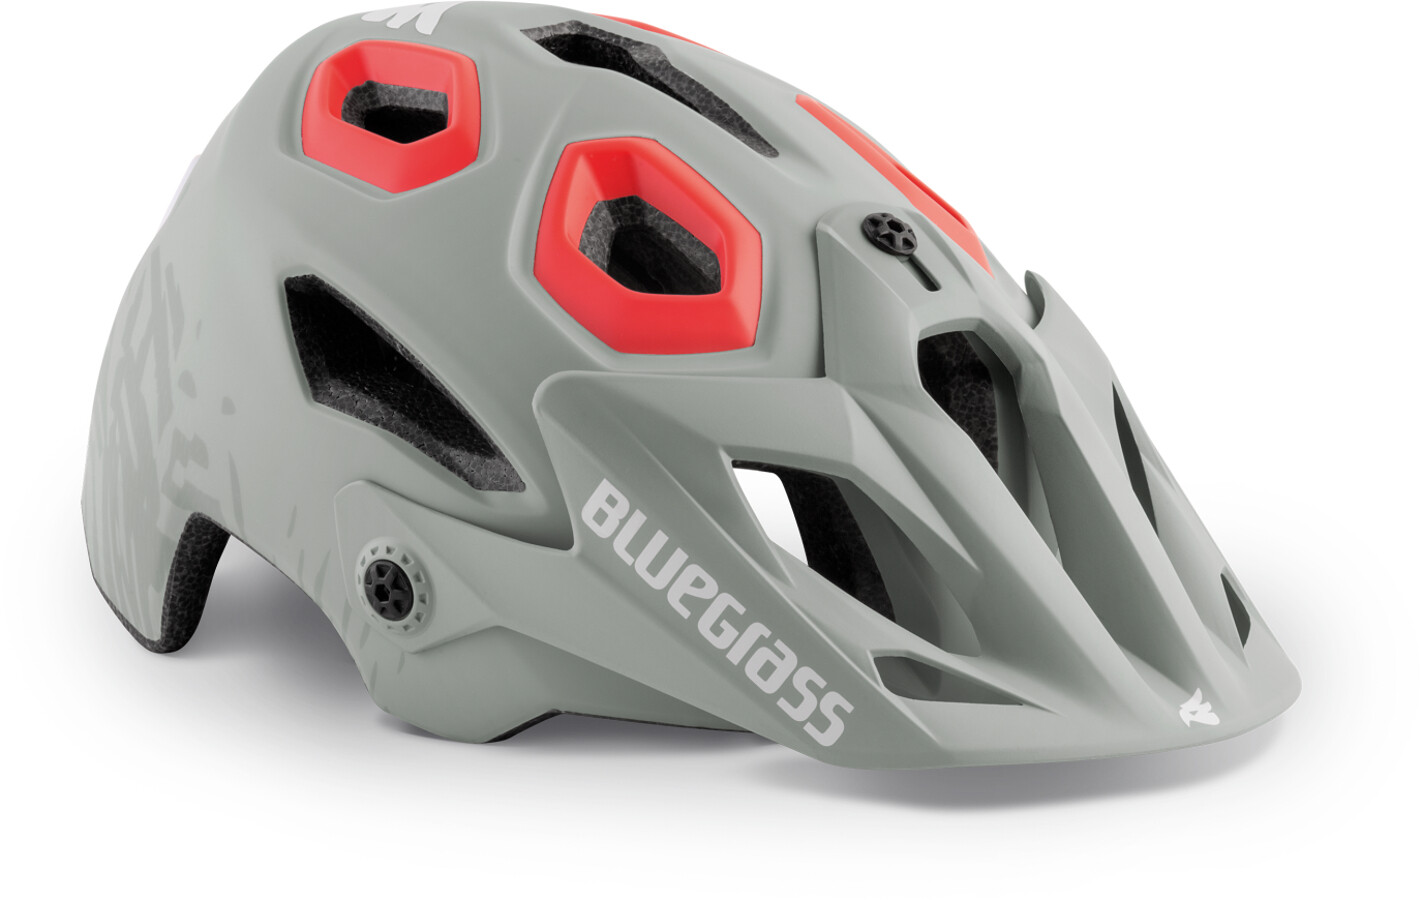 bluegrass Golden Eyes Cykelhjelm, dirty white/texture/pink (2019) | Helmets